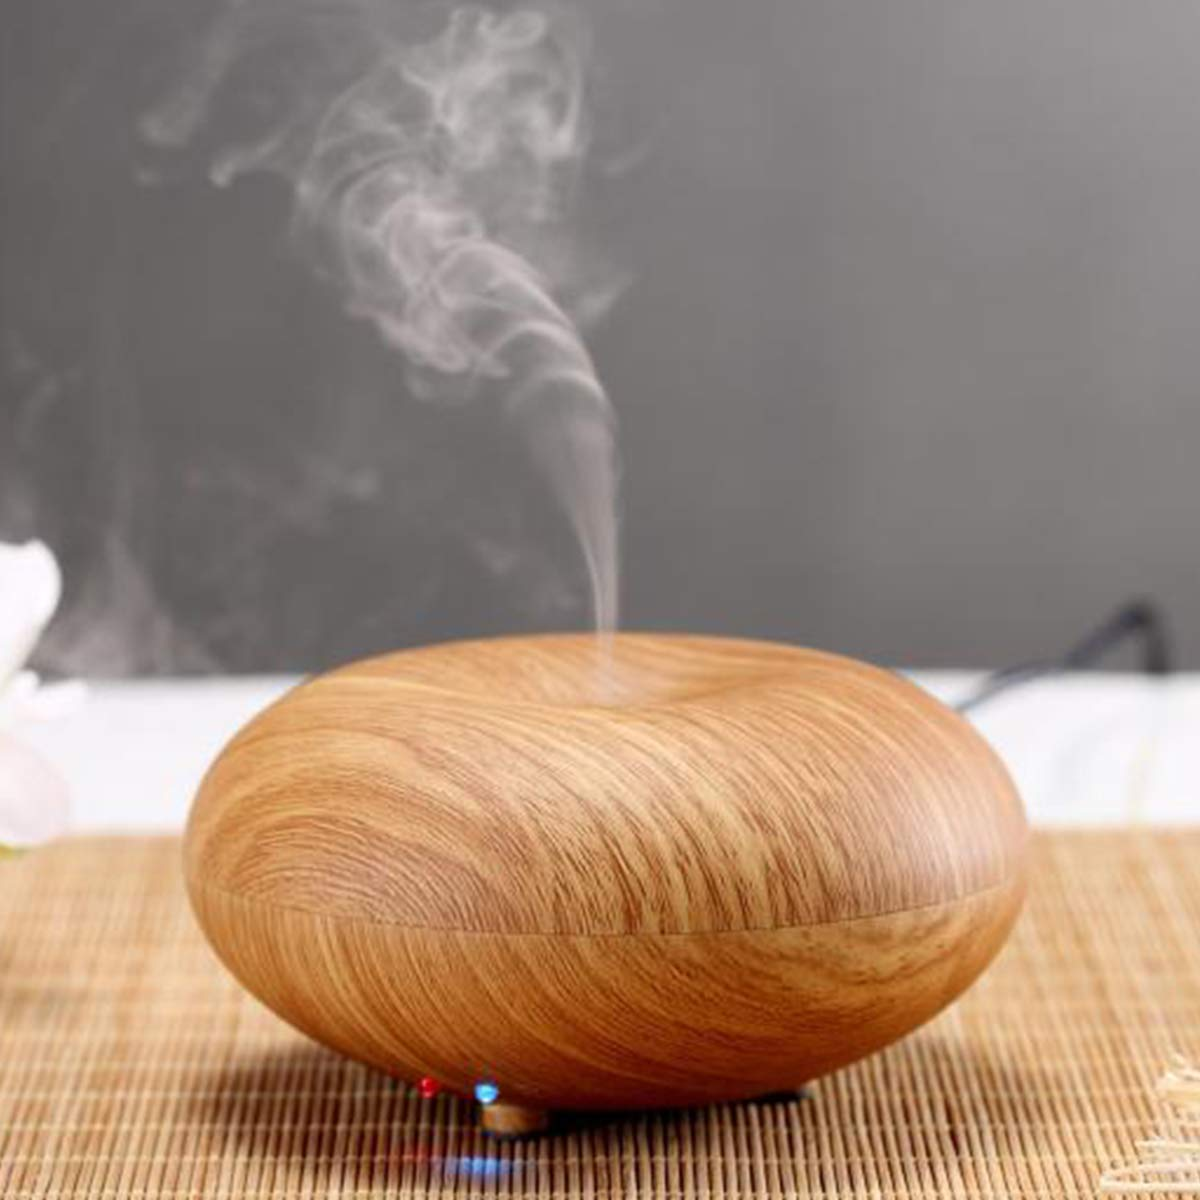 Aromatherapy Oils Diffuser, 150ml Wood Grain Ultrasonic Aroma fragrance Diffuser with Auto Shut-off Function, Warm night Light, Cool Mist Humidifier BPA-Free for Home, Office, Bedroom Room